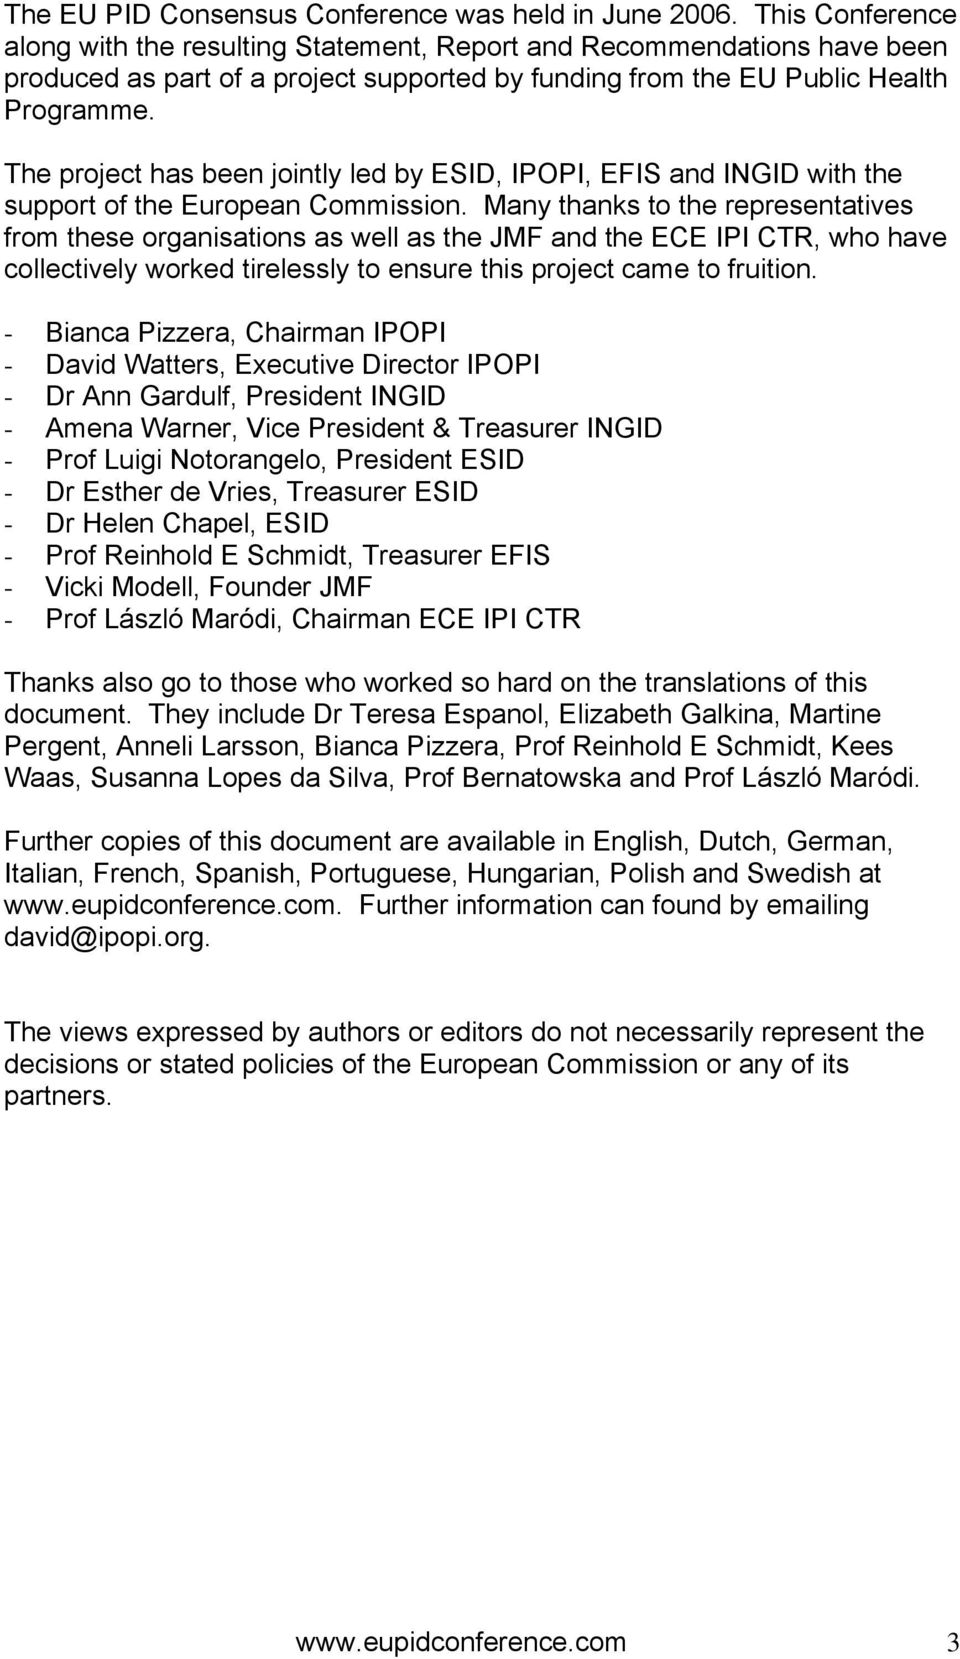 The project has been jointly led by ESID, IPOPI, EFIS and INGID with the support of the European Commission.